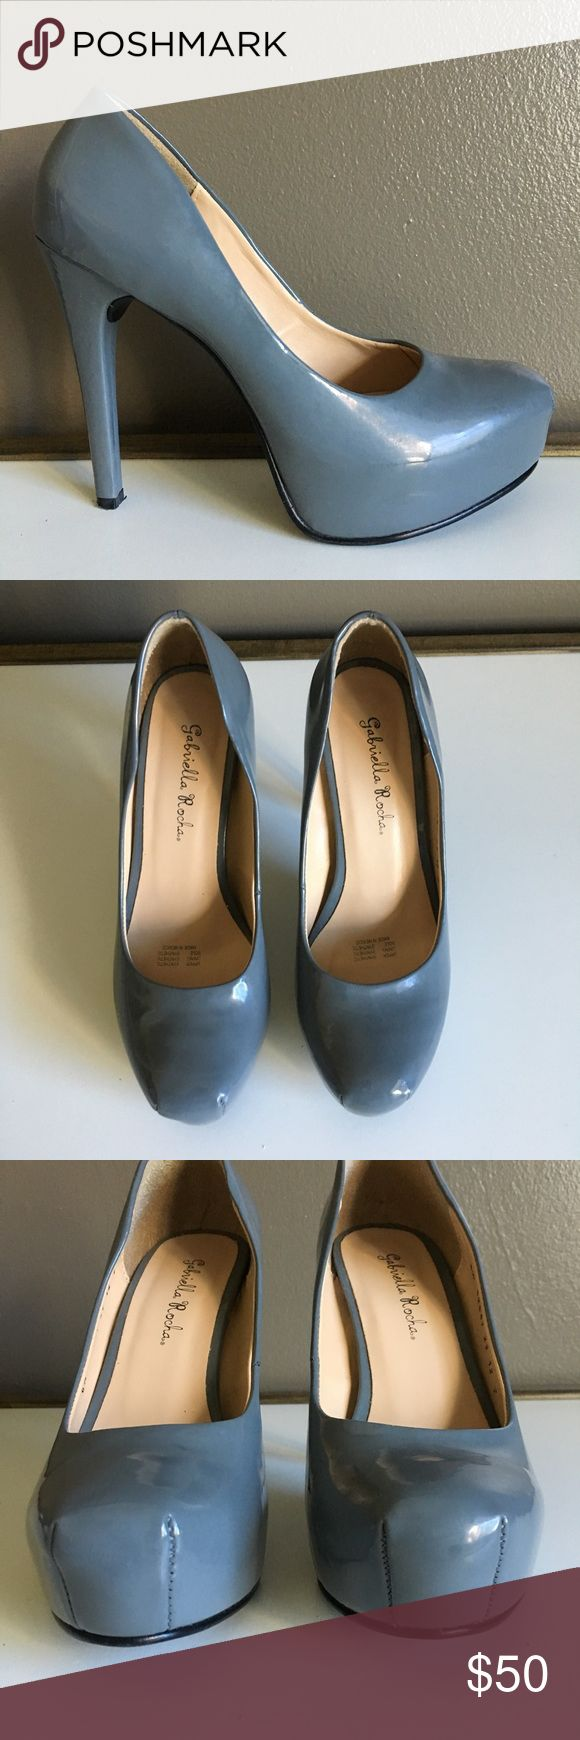 """Gabriella Rocha Pumps - Size 6.5 NWOT Gabriella Rocha grey patent synthetic leather pumps, size 6.5. I purchased these but never wore. They have some scratches on the back of one shoe, apparently they came like that and I never noticed. It's not noticeable in my opinion because it's on the inside of the left shoe. Hidden platform.   Approx heel height: 4.5"""" Approx platform height: 1"""" Gabriella Rocha Shoes Platforms"""